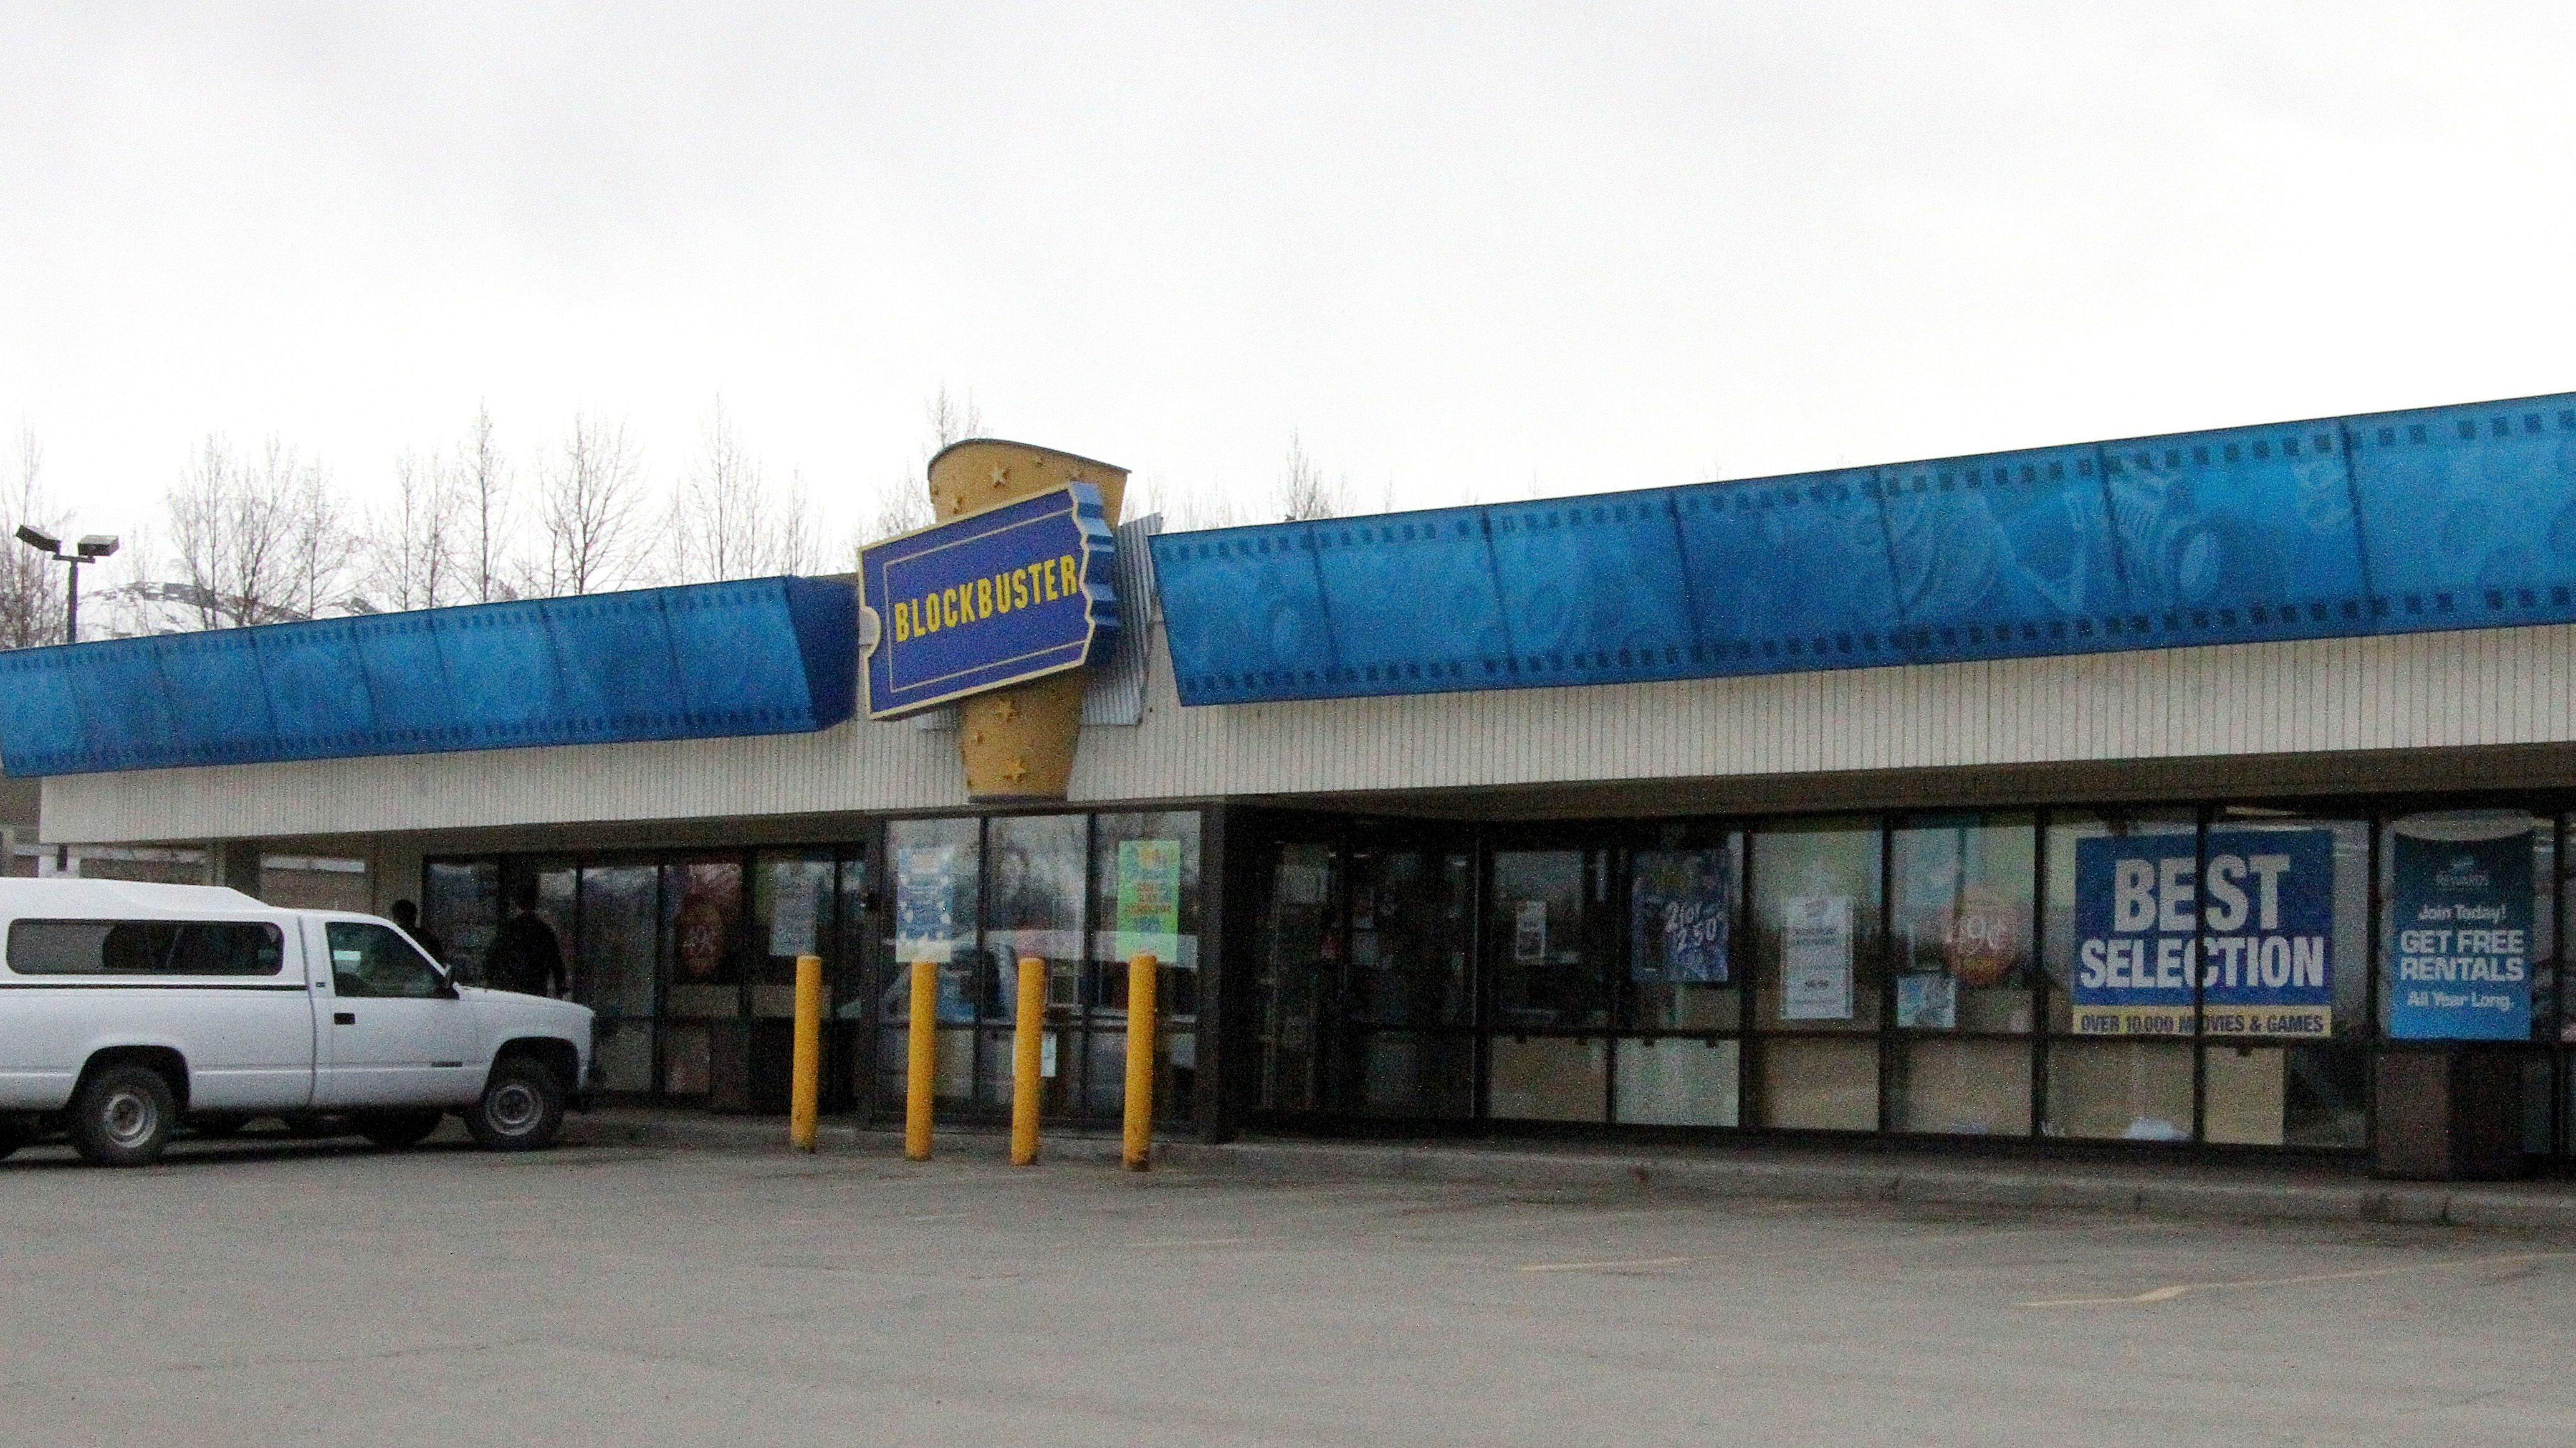 "FILE - This May 2, 2018 file photo shows the exterior of a Blockbuster Video store in Anchorage, Alaska. Despite the gift of the jockstrap worn by actor Russell Crowe in the 2005 movie ""Cinderella Man"" from HBO's John Oliver to bring traffic into the store, Blockbuster Alaska General Manager Kevin Daymude said the last two Blockbuster Video locations in Alaska will rent their last video on Sunday, July 15, 2018, apparently leaving the last Blockbuster Video in Bend, Ore. (AP Photo/Mark Thiessen, File)"